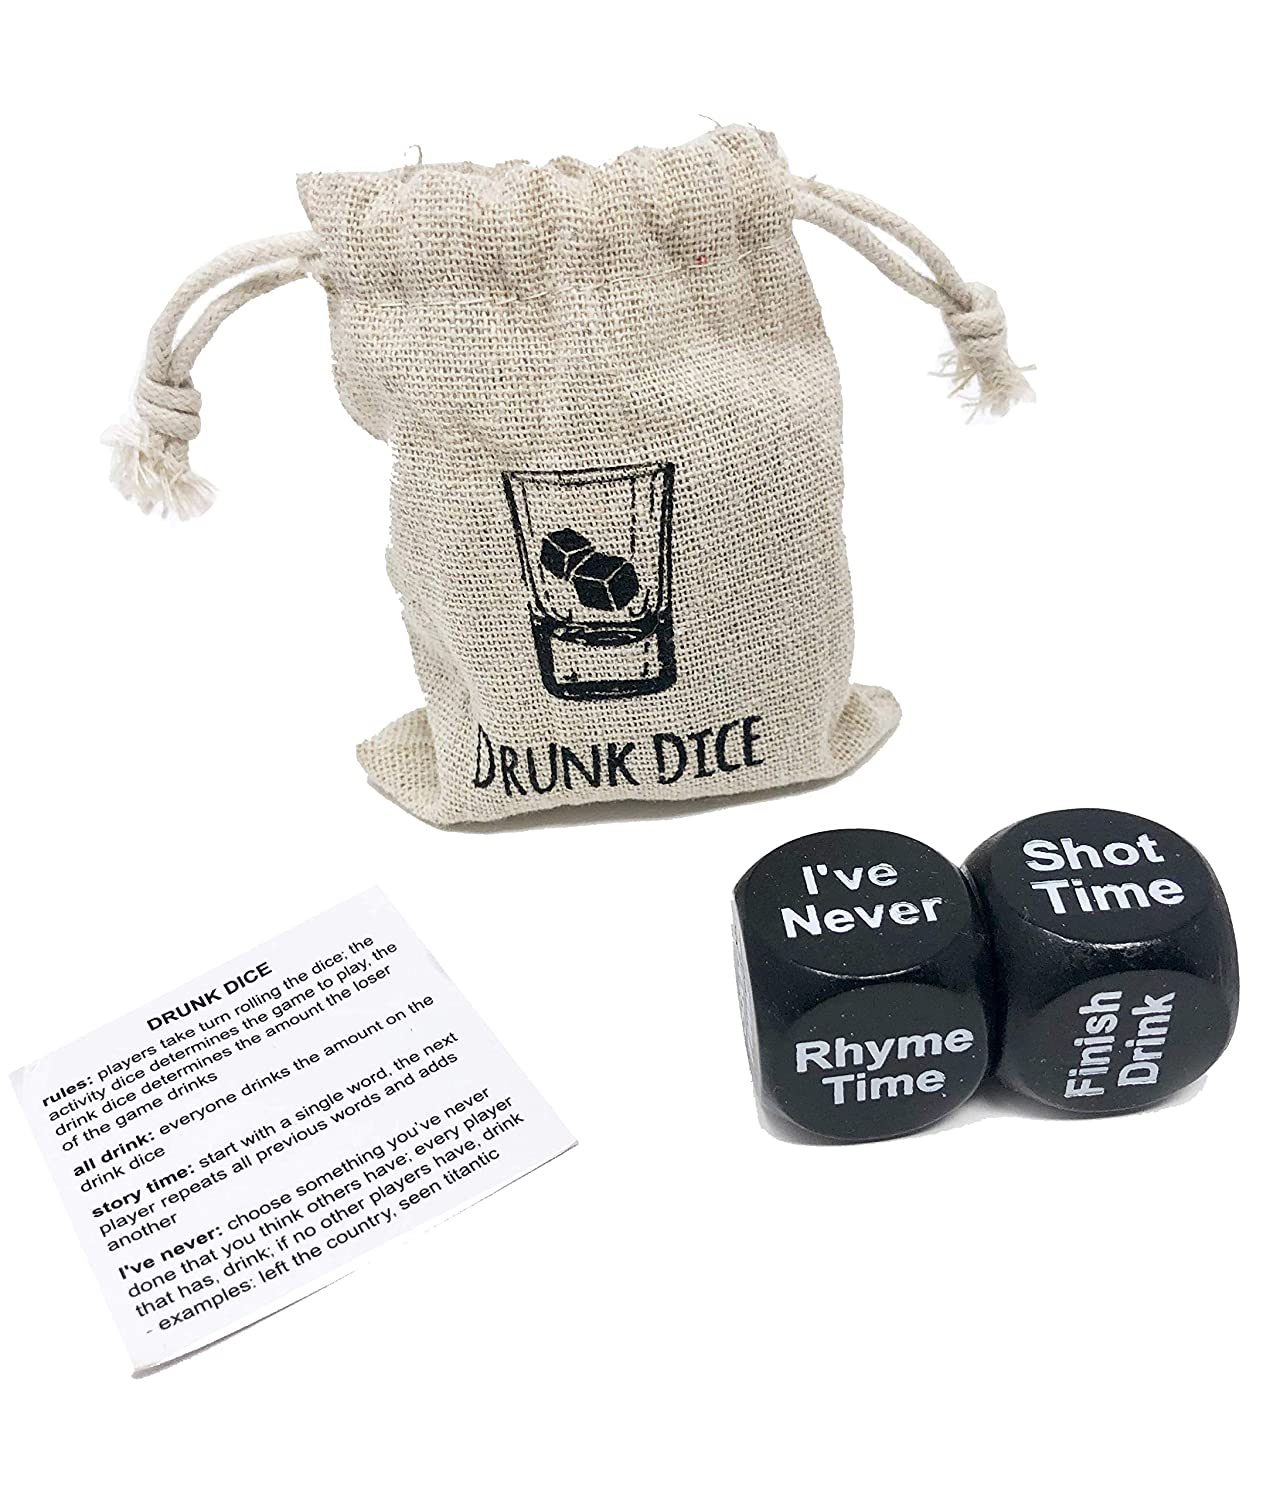 Games Include: Ive Never Truth Dare Drunk Dice Most Likely Adult Drinking Dice Party Game 2 Sets : 4 Pcs Dice 2 Carry Bags Total